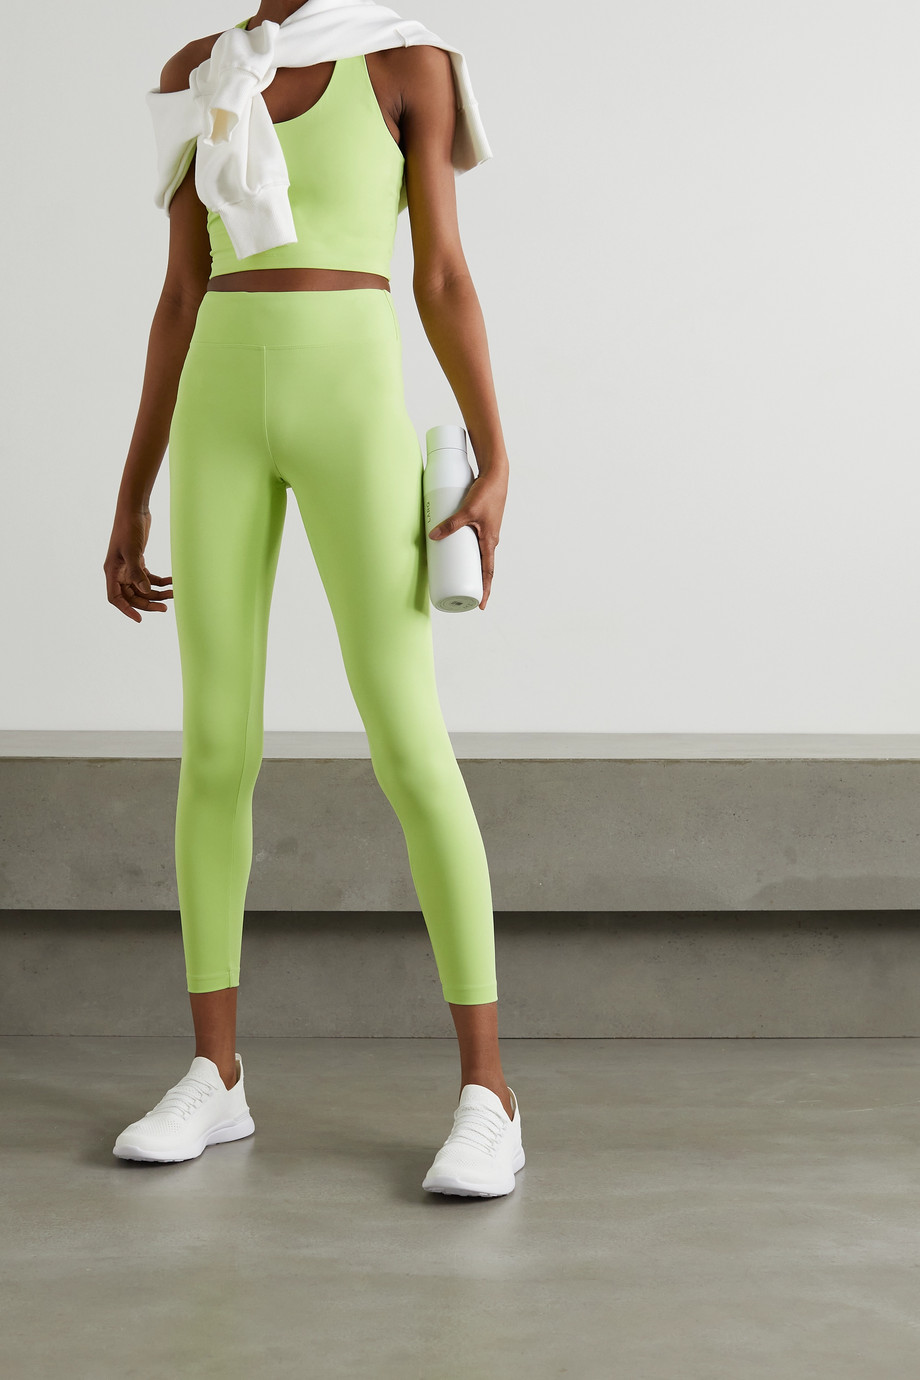 KORAL Drive stretch leggings